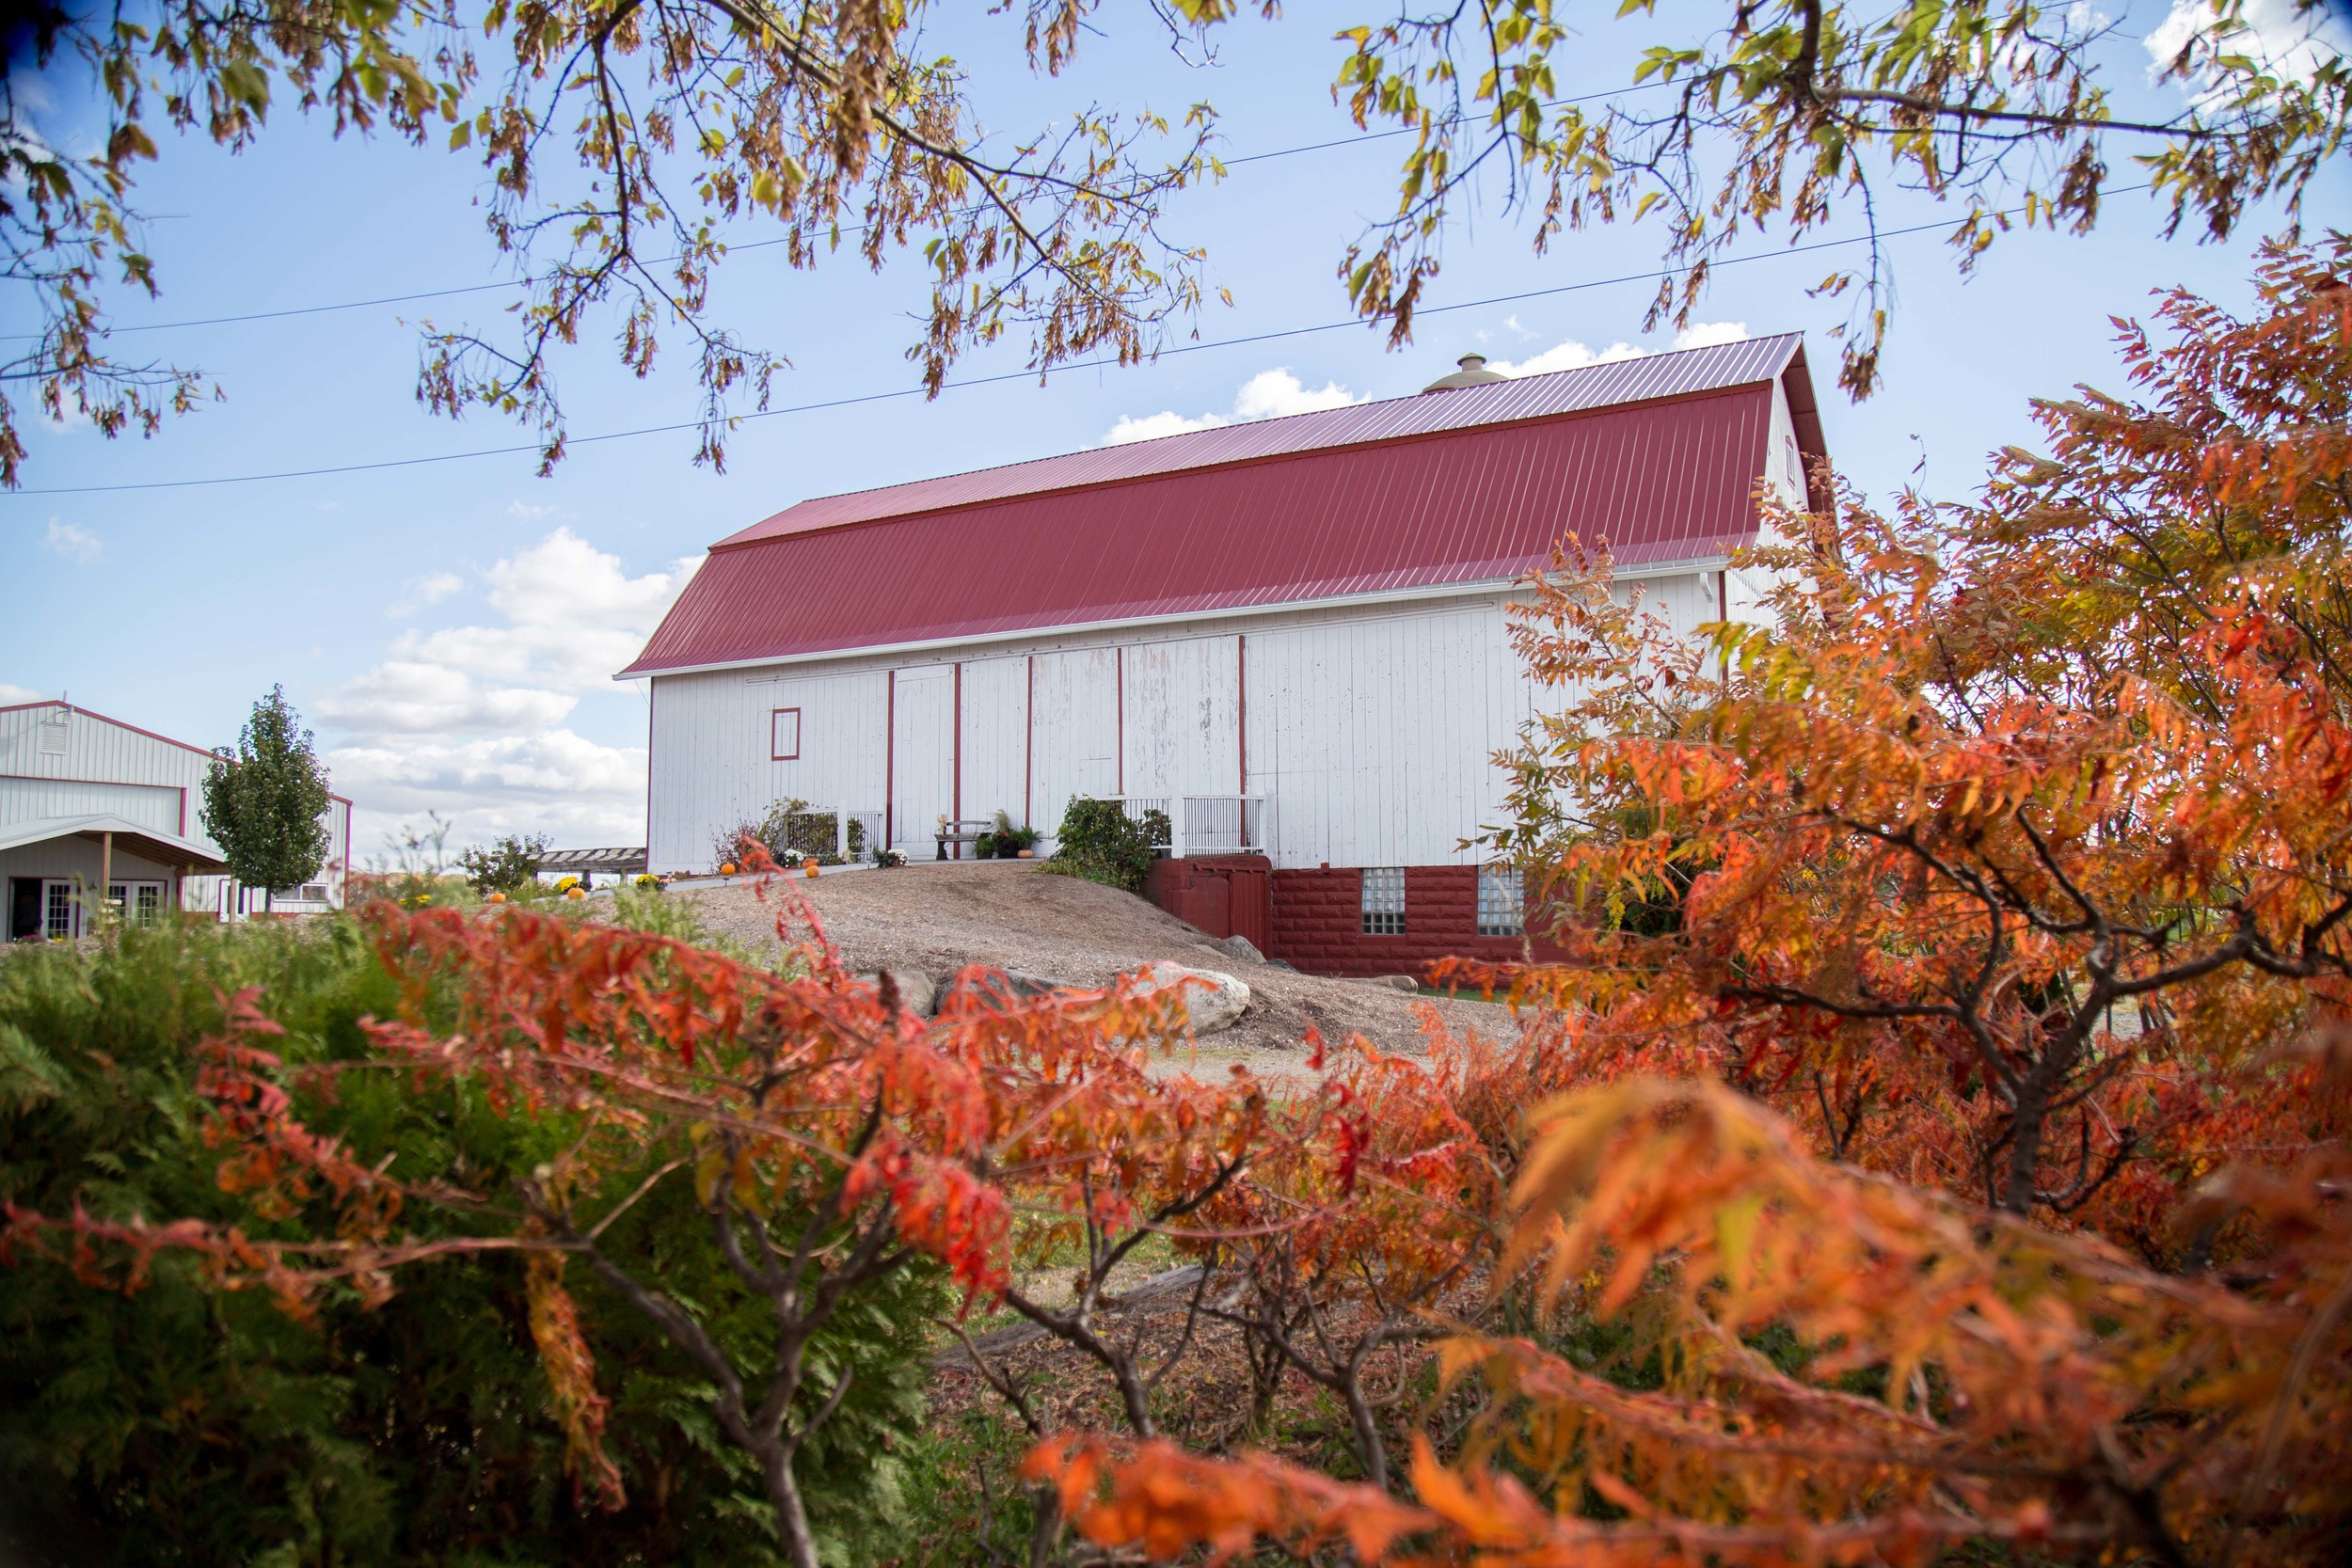 10_16-Barn_Fall_Colors_9997.jpg